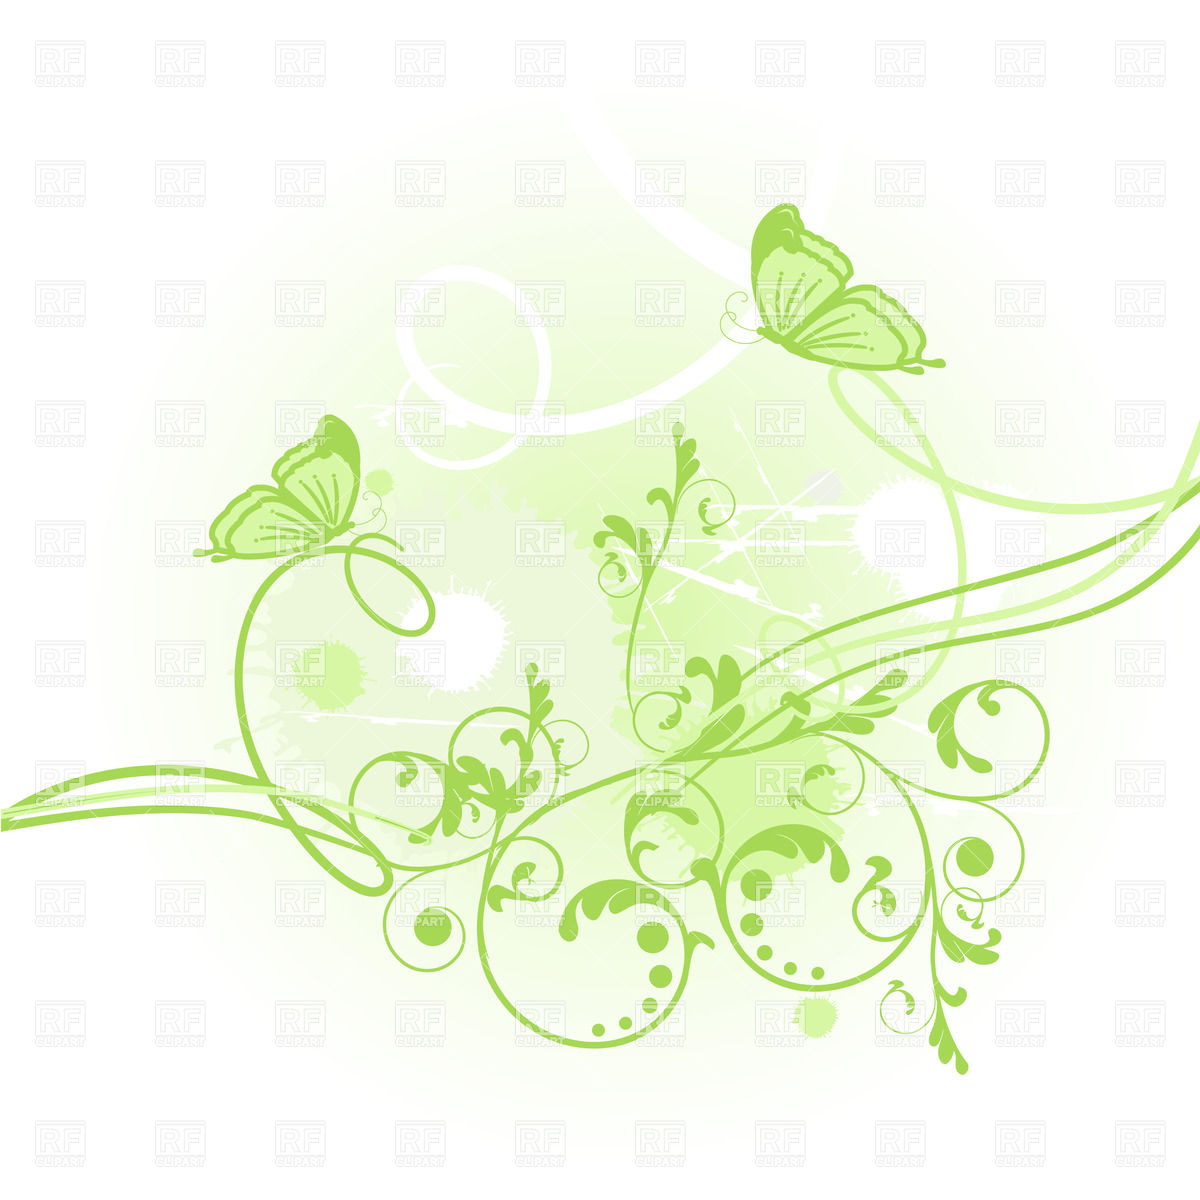 Green curly twigs on white background Vector Image #23114.